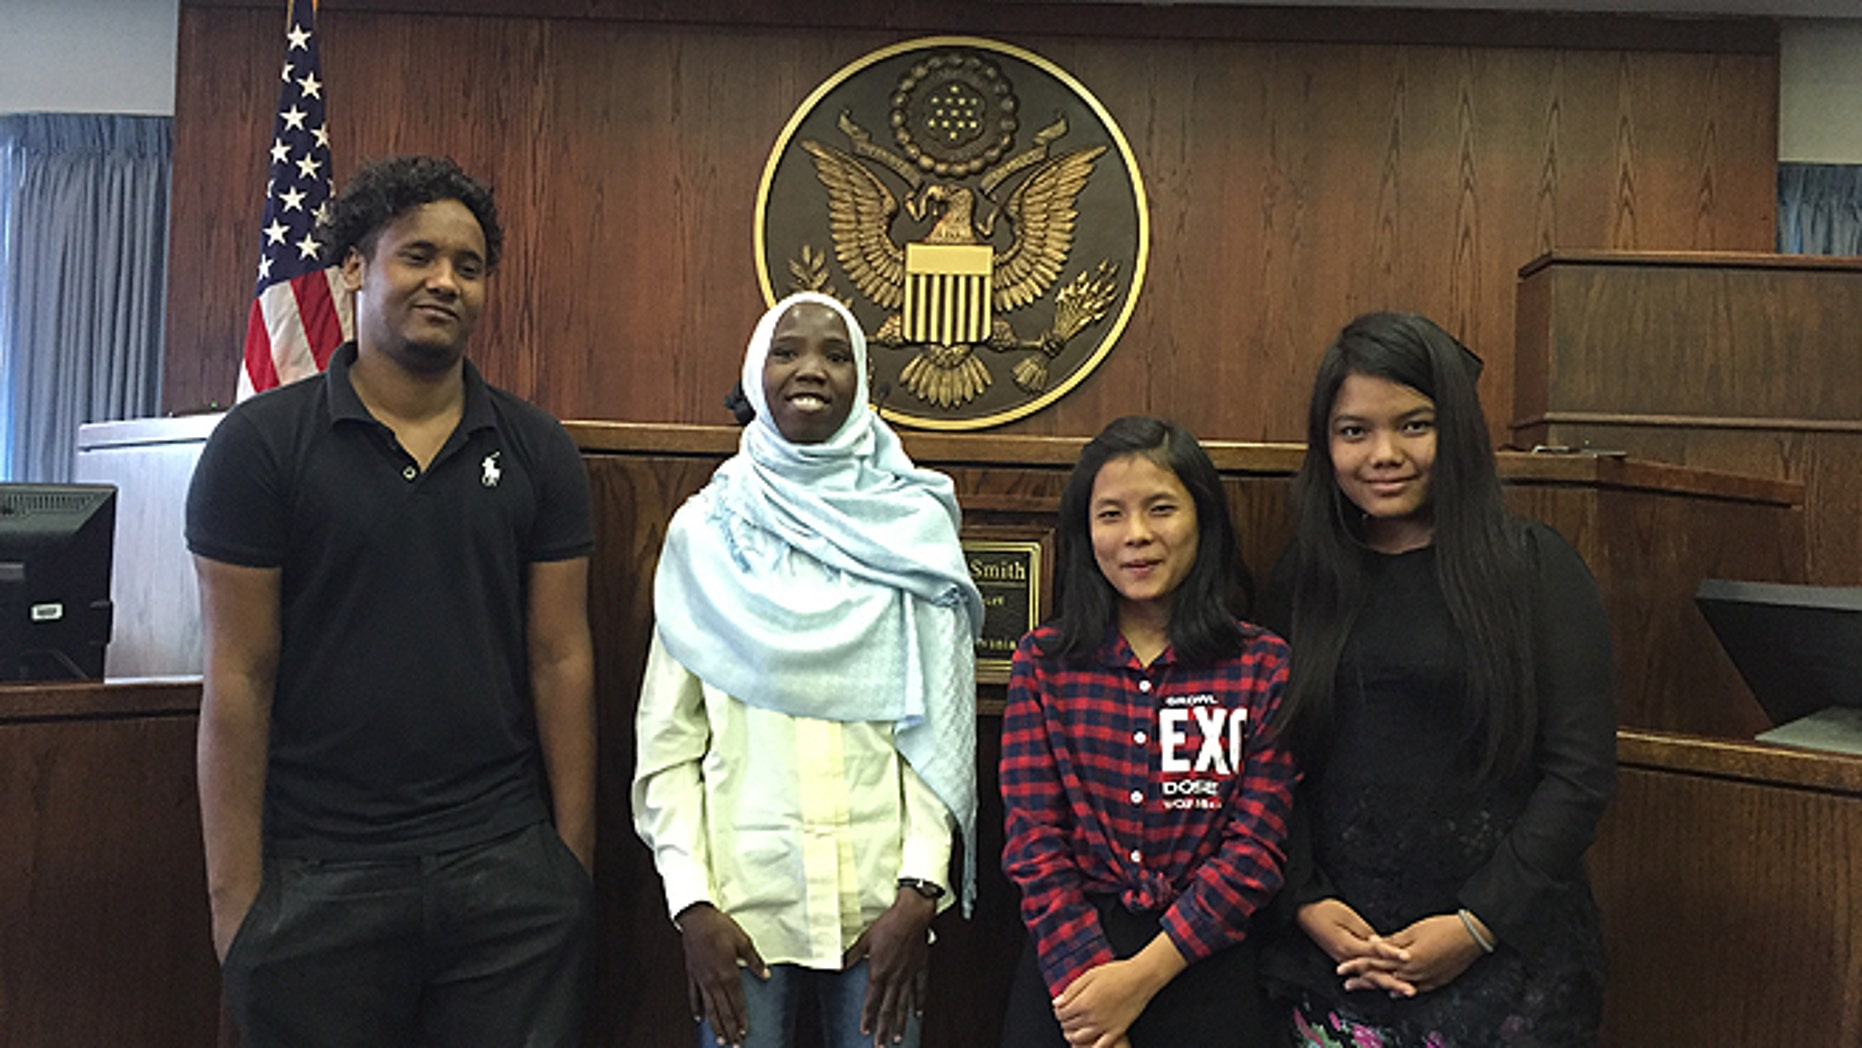 Four of the students, shown here at federal court where they are suing the Lancaster (Pa.) school district.